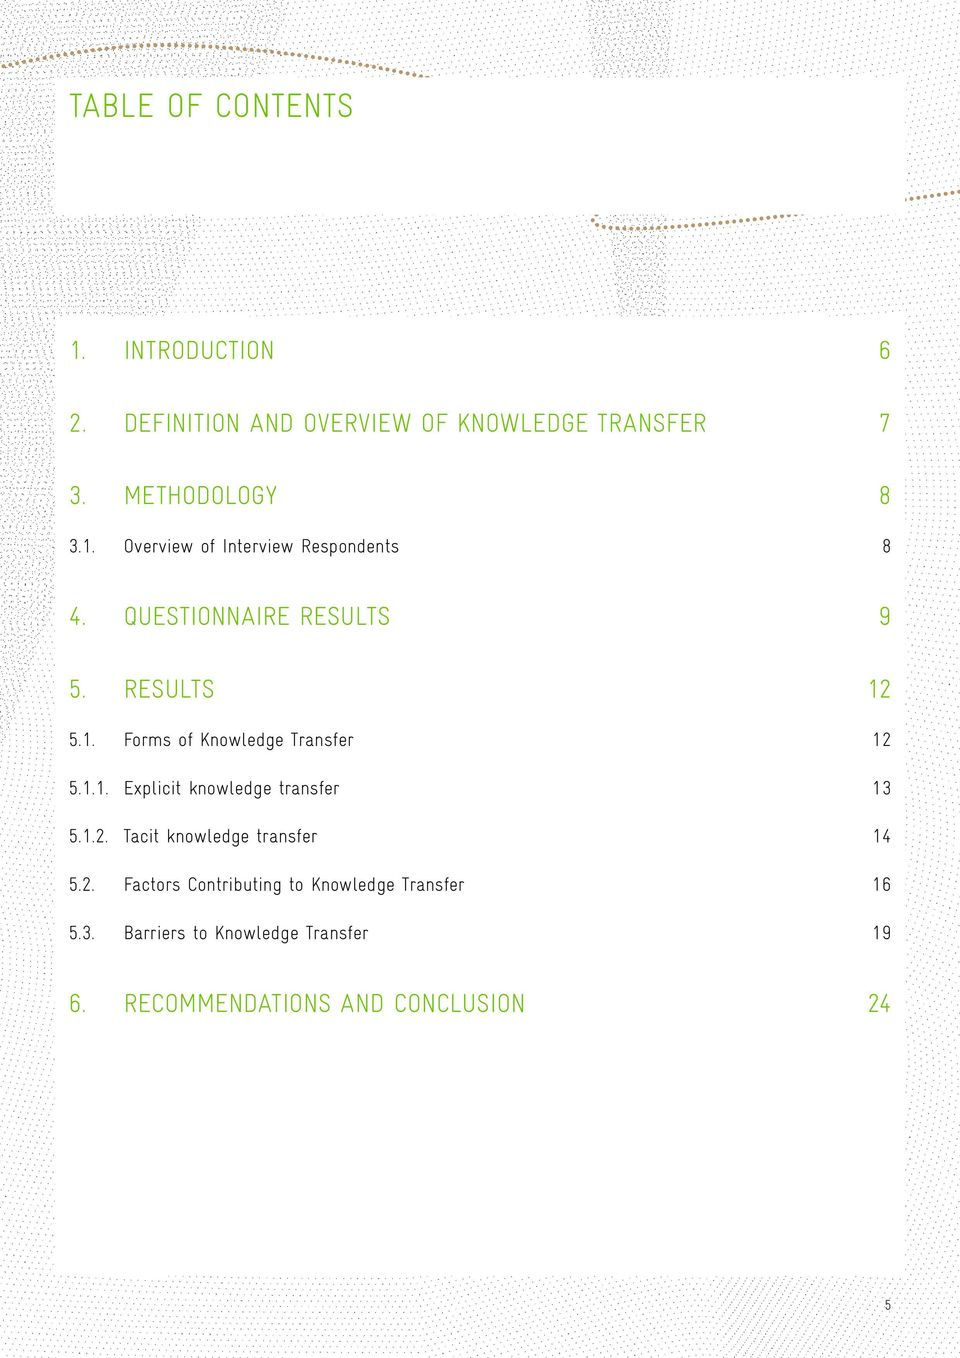 1.1. Explicit knowledge transfer 13 5.1.2. Tacit knowledge transfer 14 5.2. Factors Contributing to Knowledge Transfer 16 5.